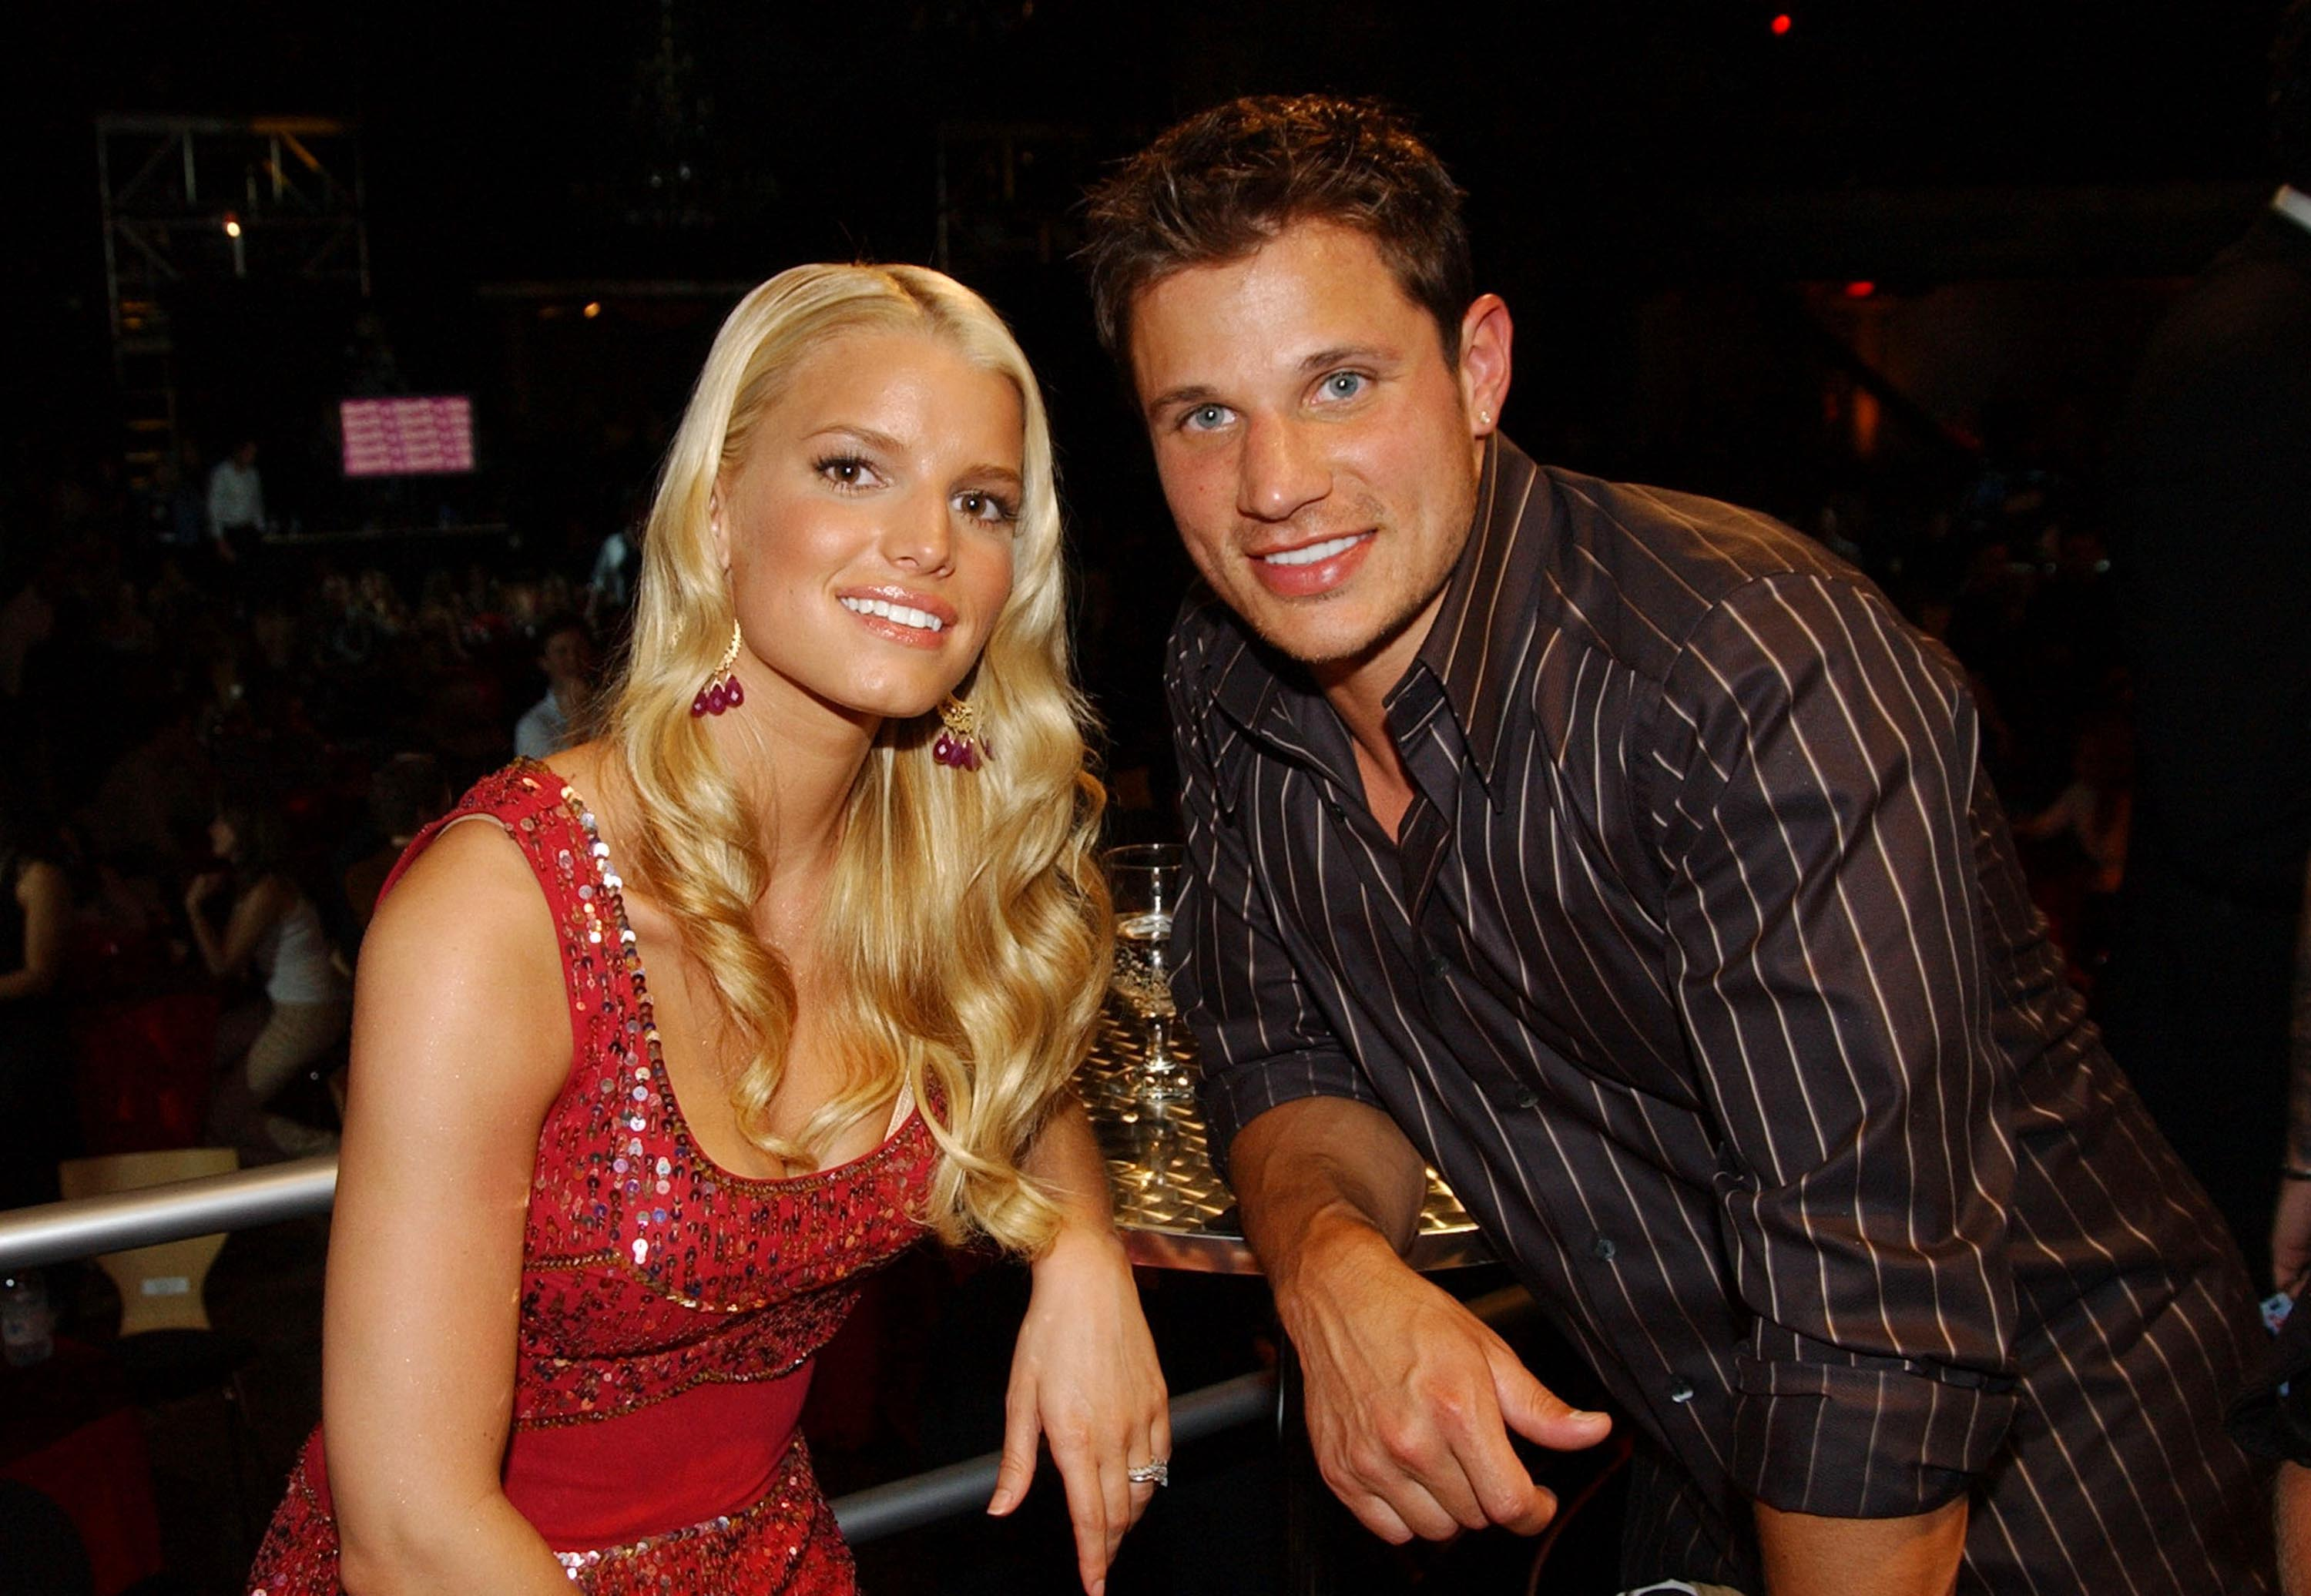 Jessica Simpson and Nick Lachey at MTV Bash - Backstage and Audience in Hollywood on June 28, 2003.